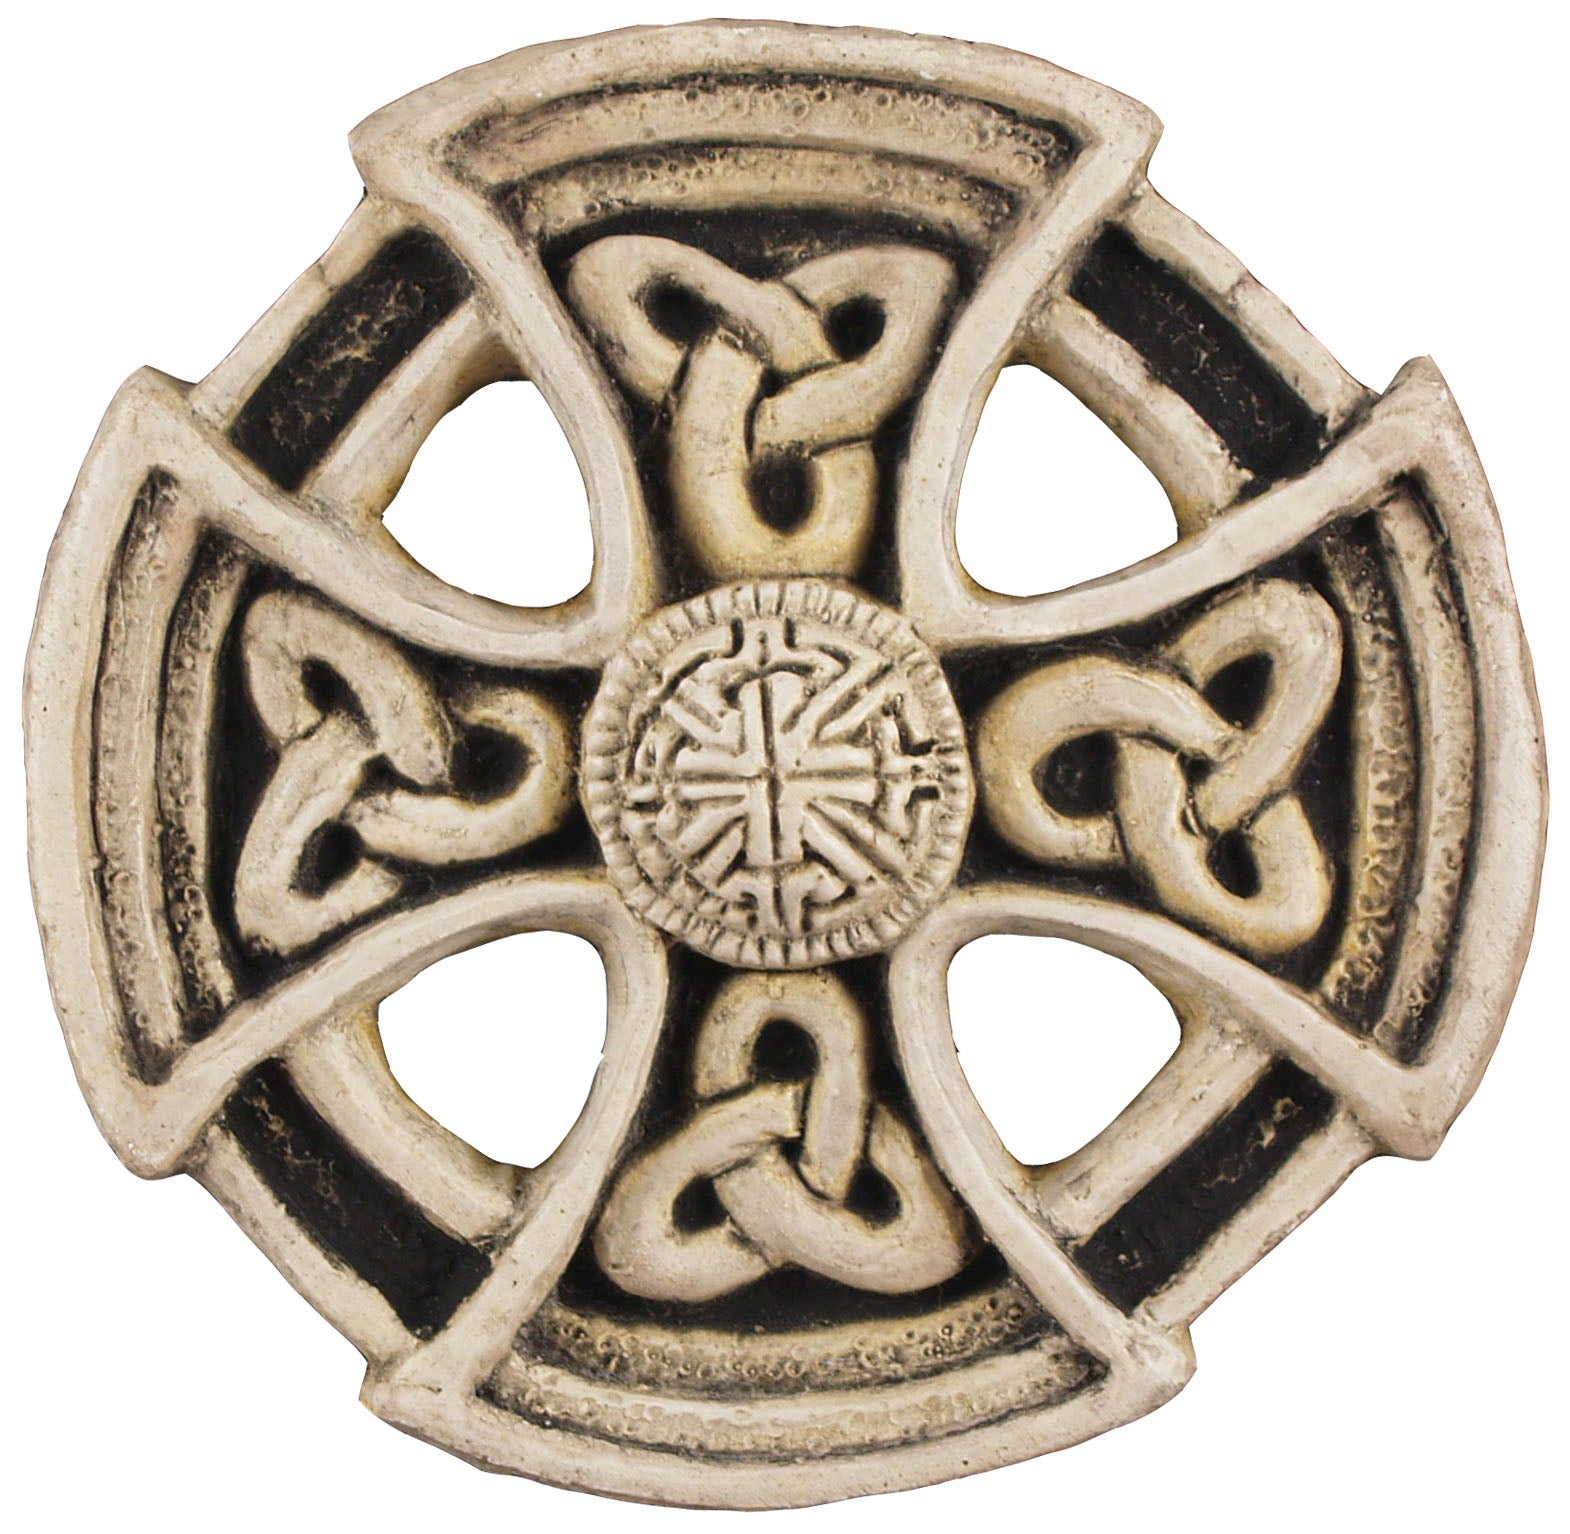 St. Columba Wheel Cross